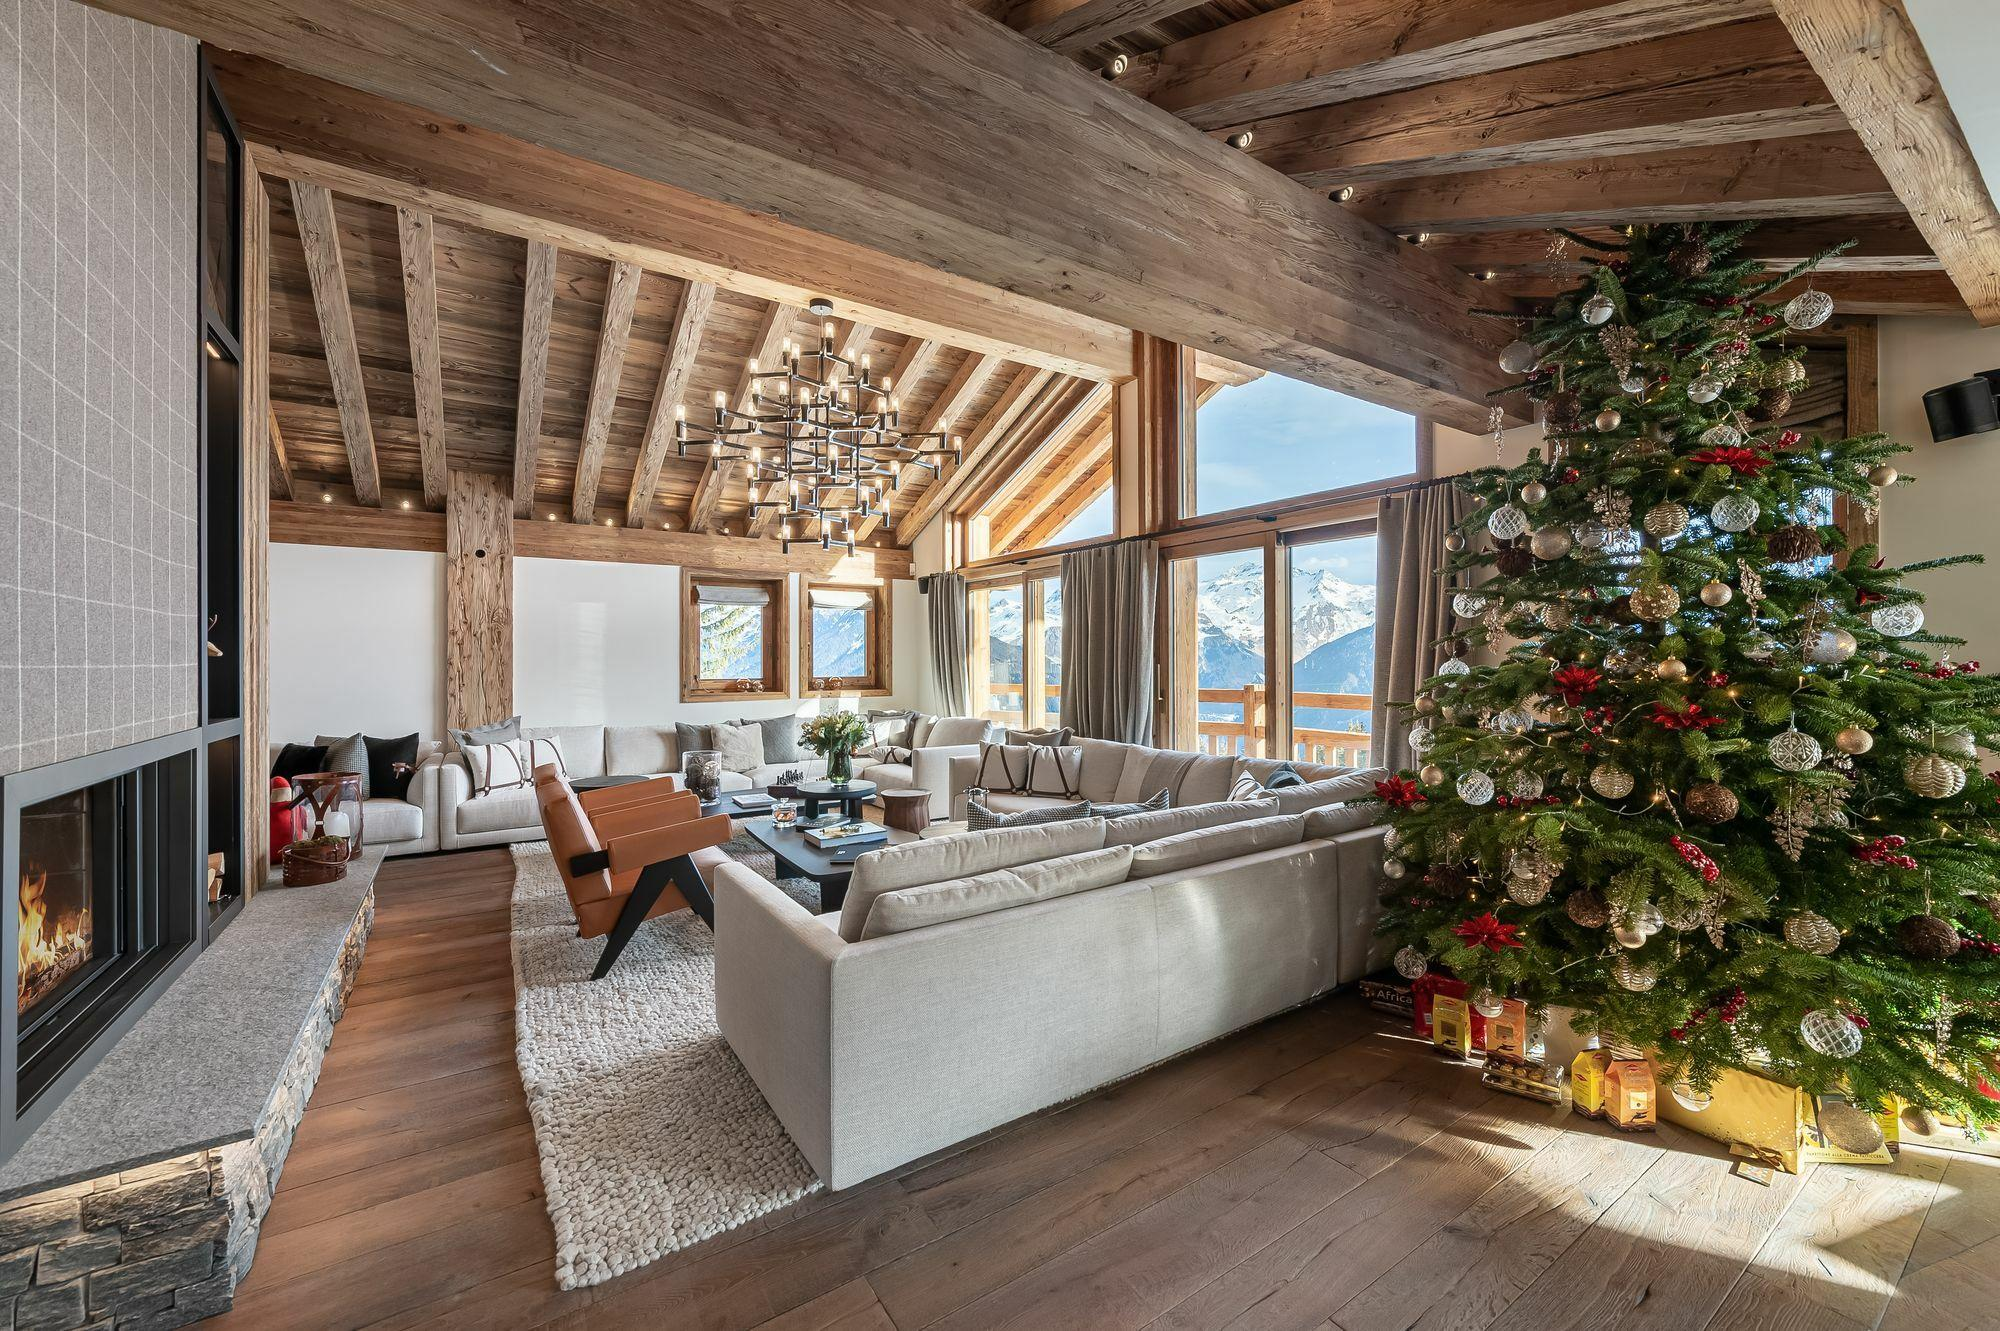 Les Bruxellois Accommodation in Courchevel